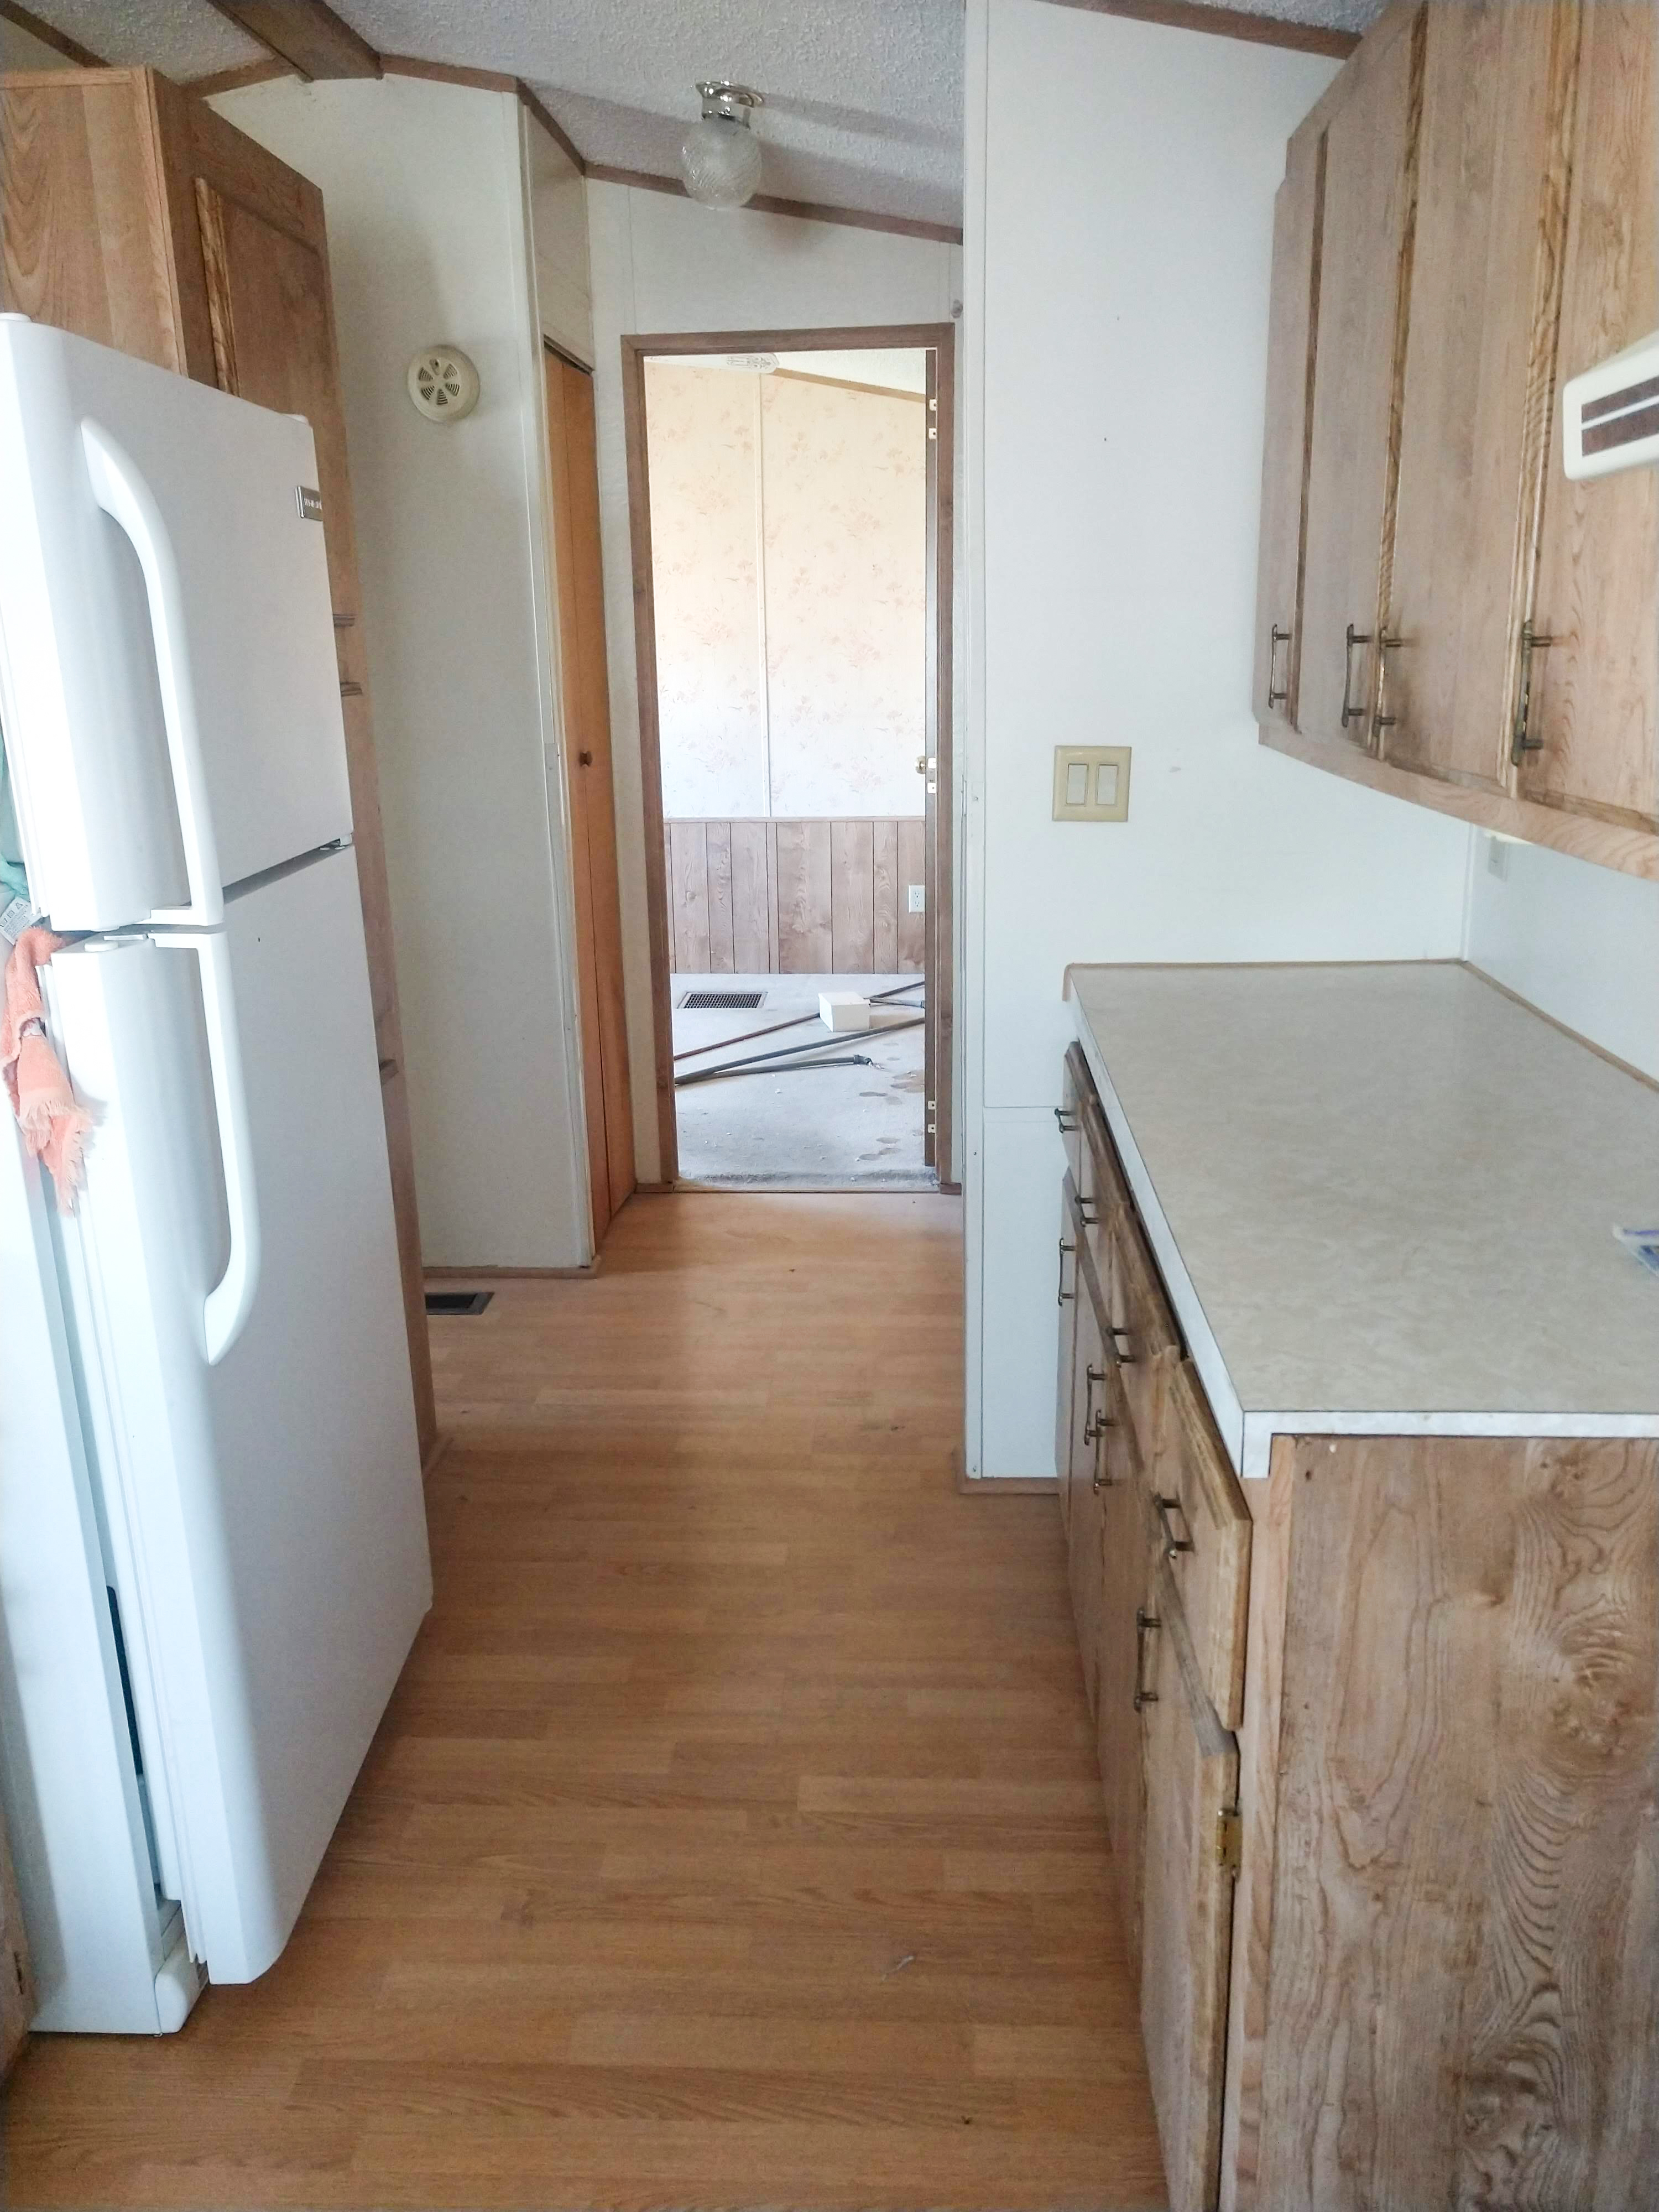 Fully equipped kitchen and other amenities at our RV park